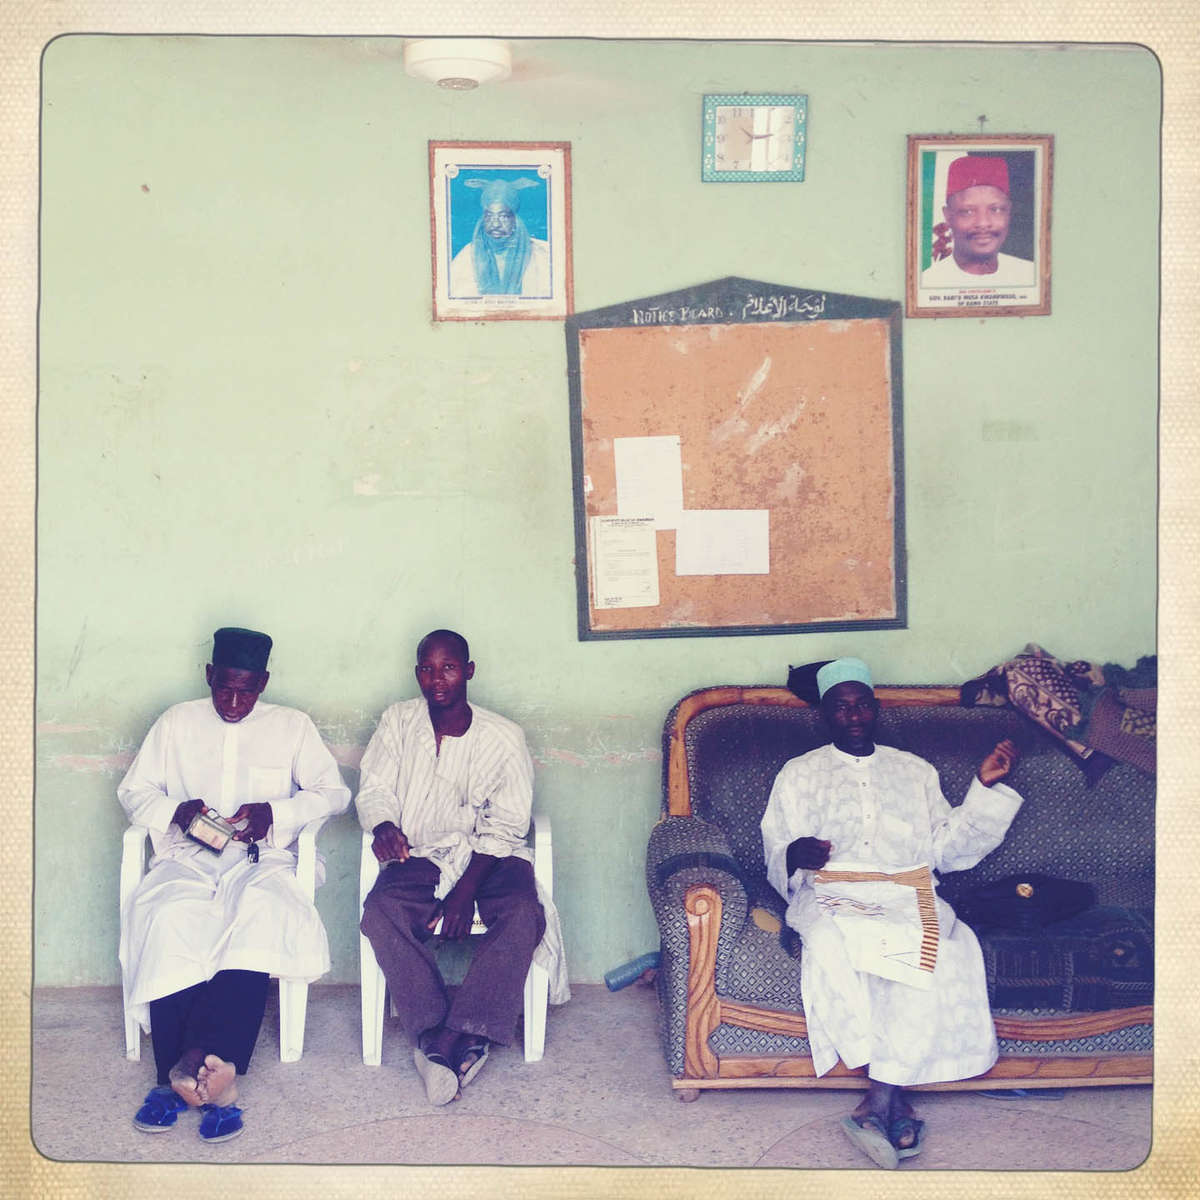 Office of the Hisbah, the Islamic Morality police, in Kano, Northern Nigeria. April 2013.